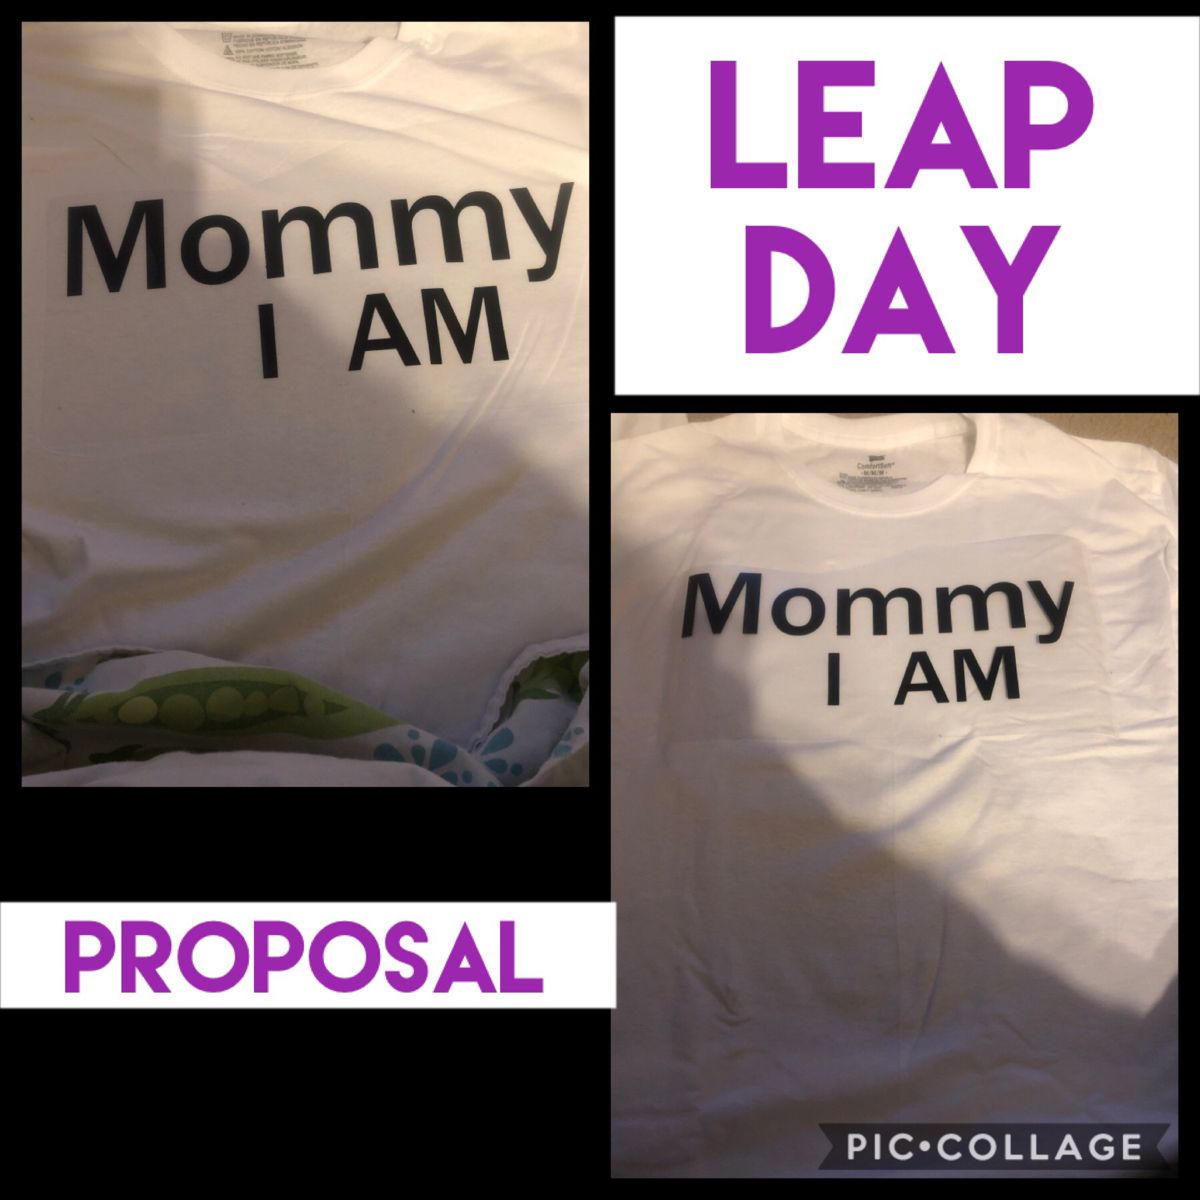 Mommy And Baby Shirt For Leap Day Proposal To Daddy In